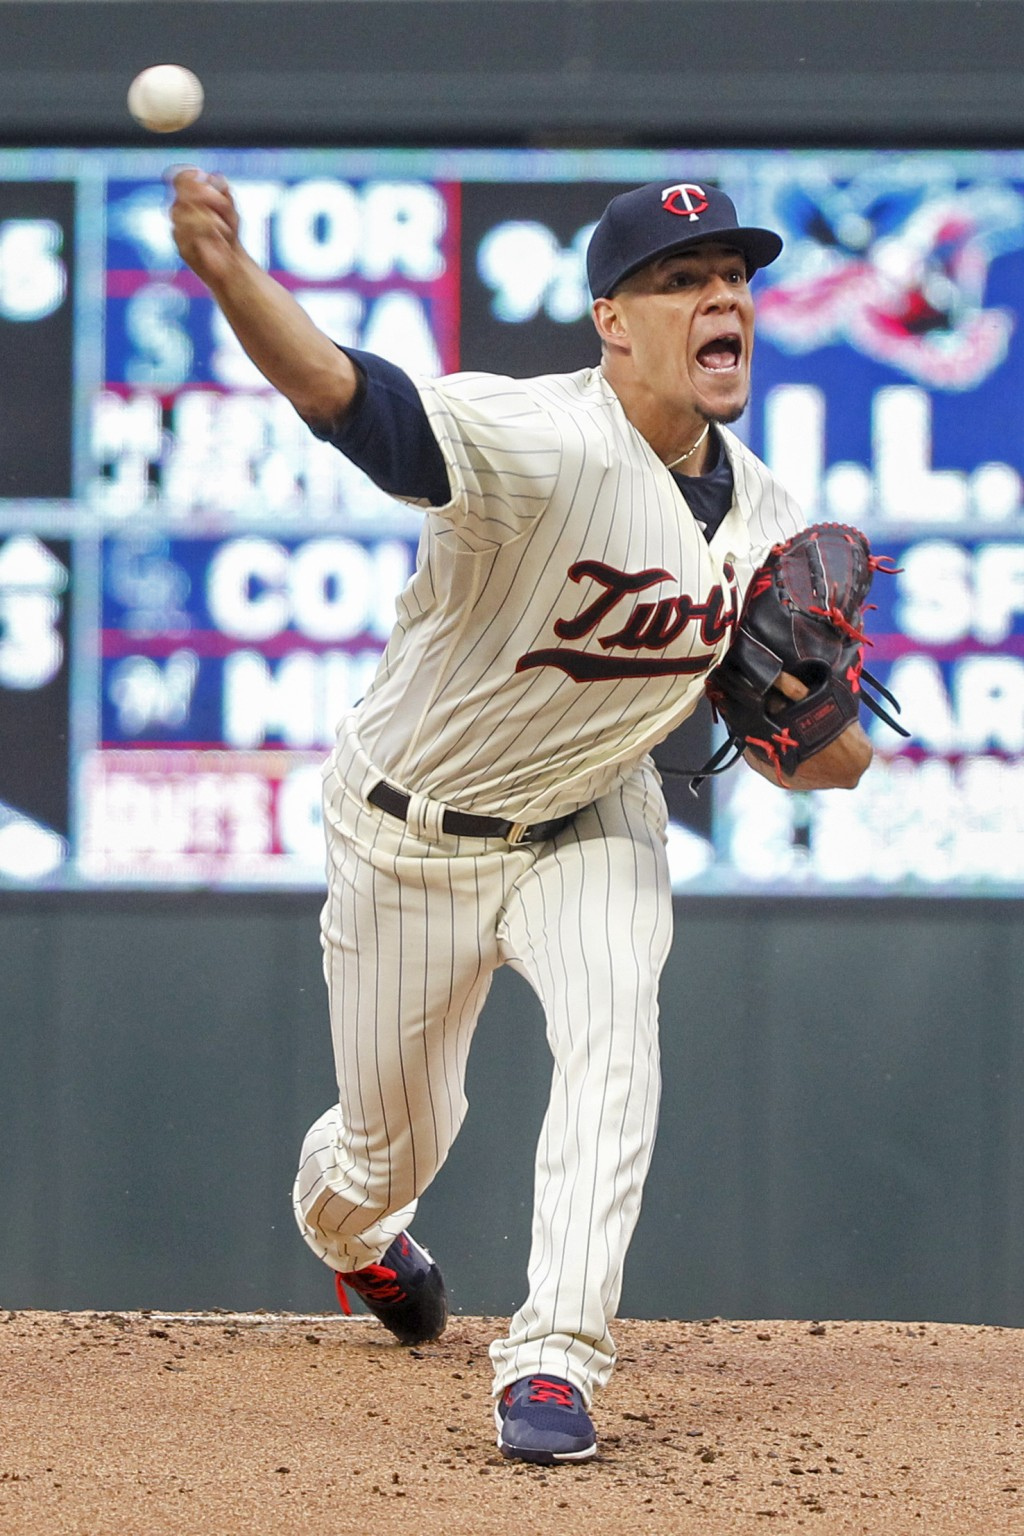 Minnesota Twins starting pitcher Jose Berrios throws to the Kansas City Royals in the first inning of a baseball game Saturday, Aug. 4, 2018, in Minne...